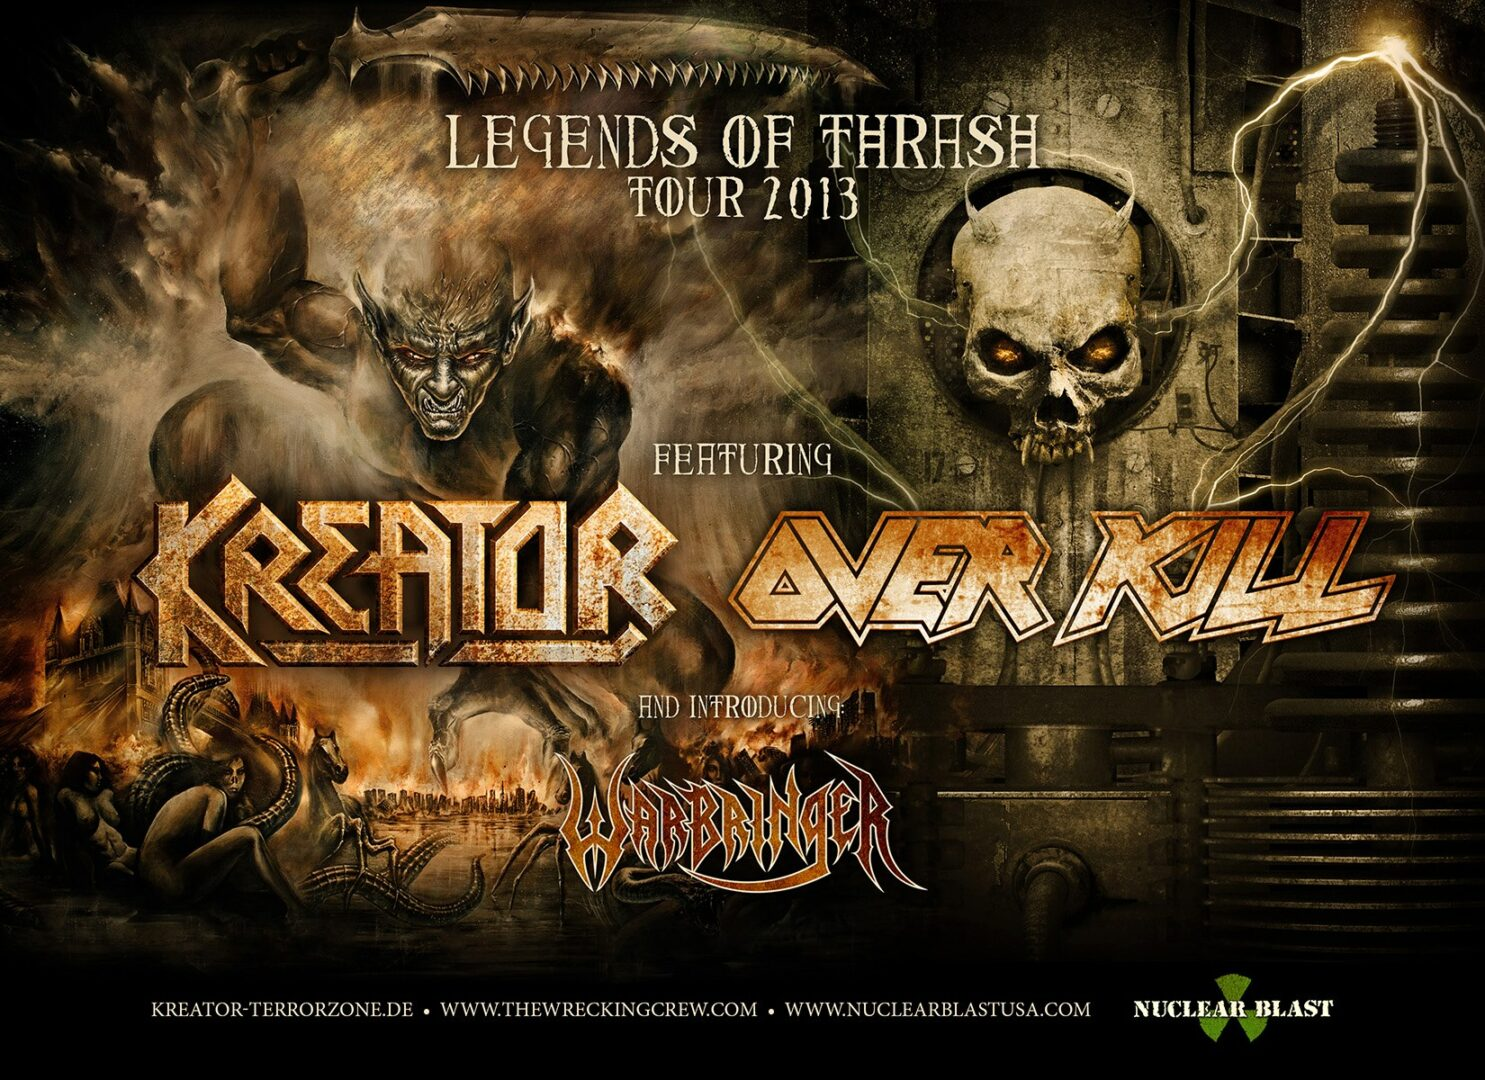 Legends of Thrash Tour 2013 featuring Kreator and Overkill – REVIEW